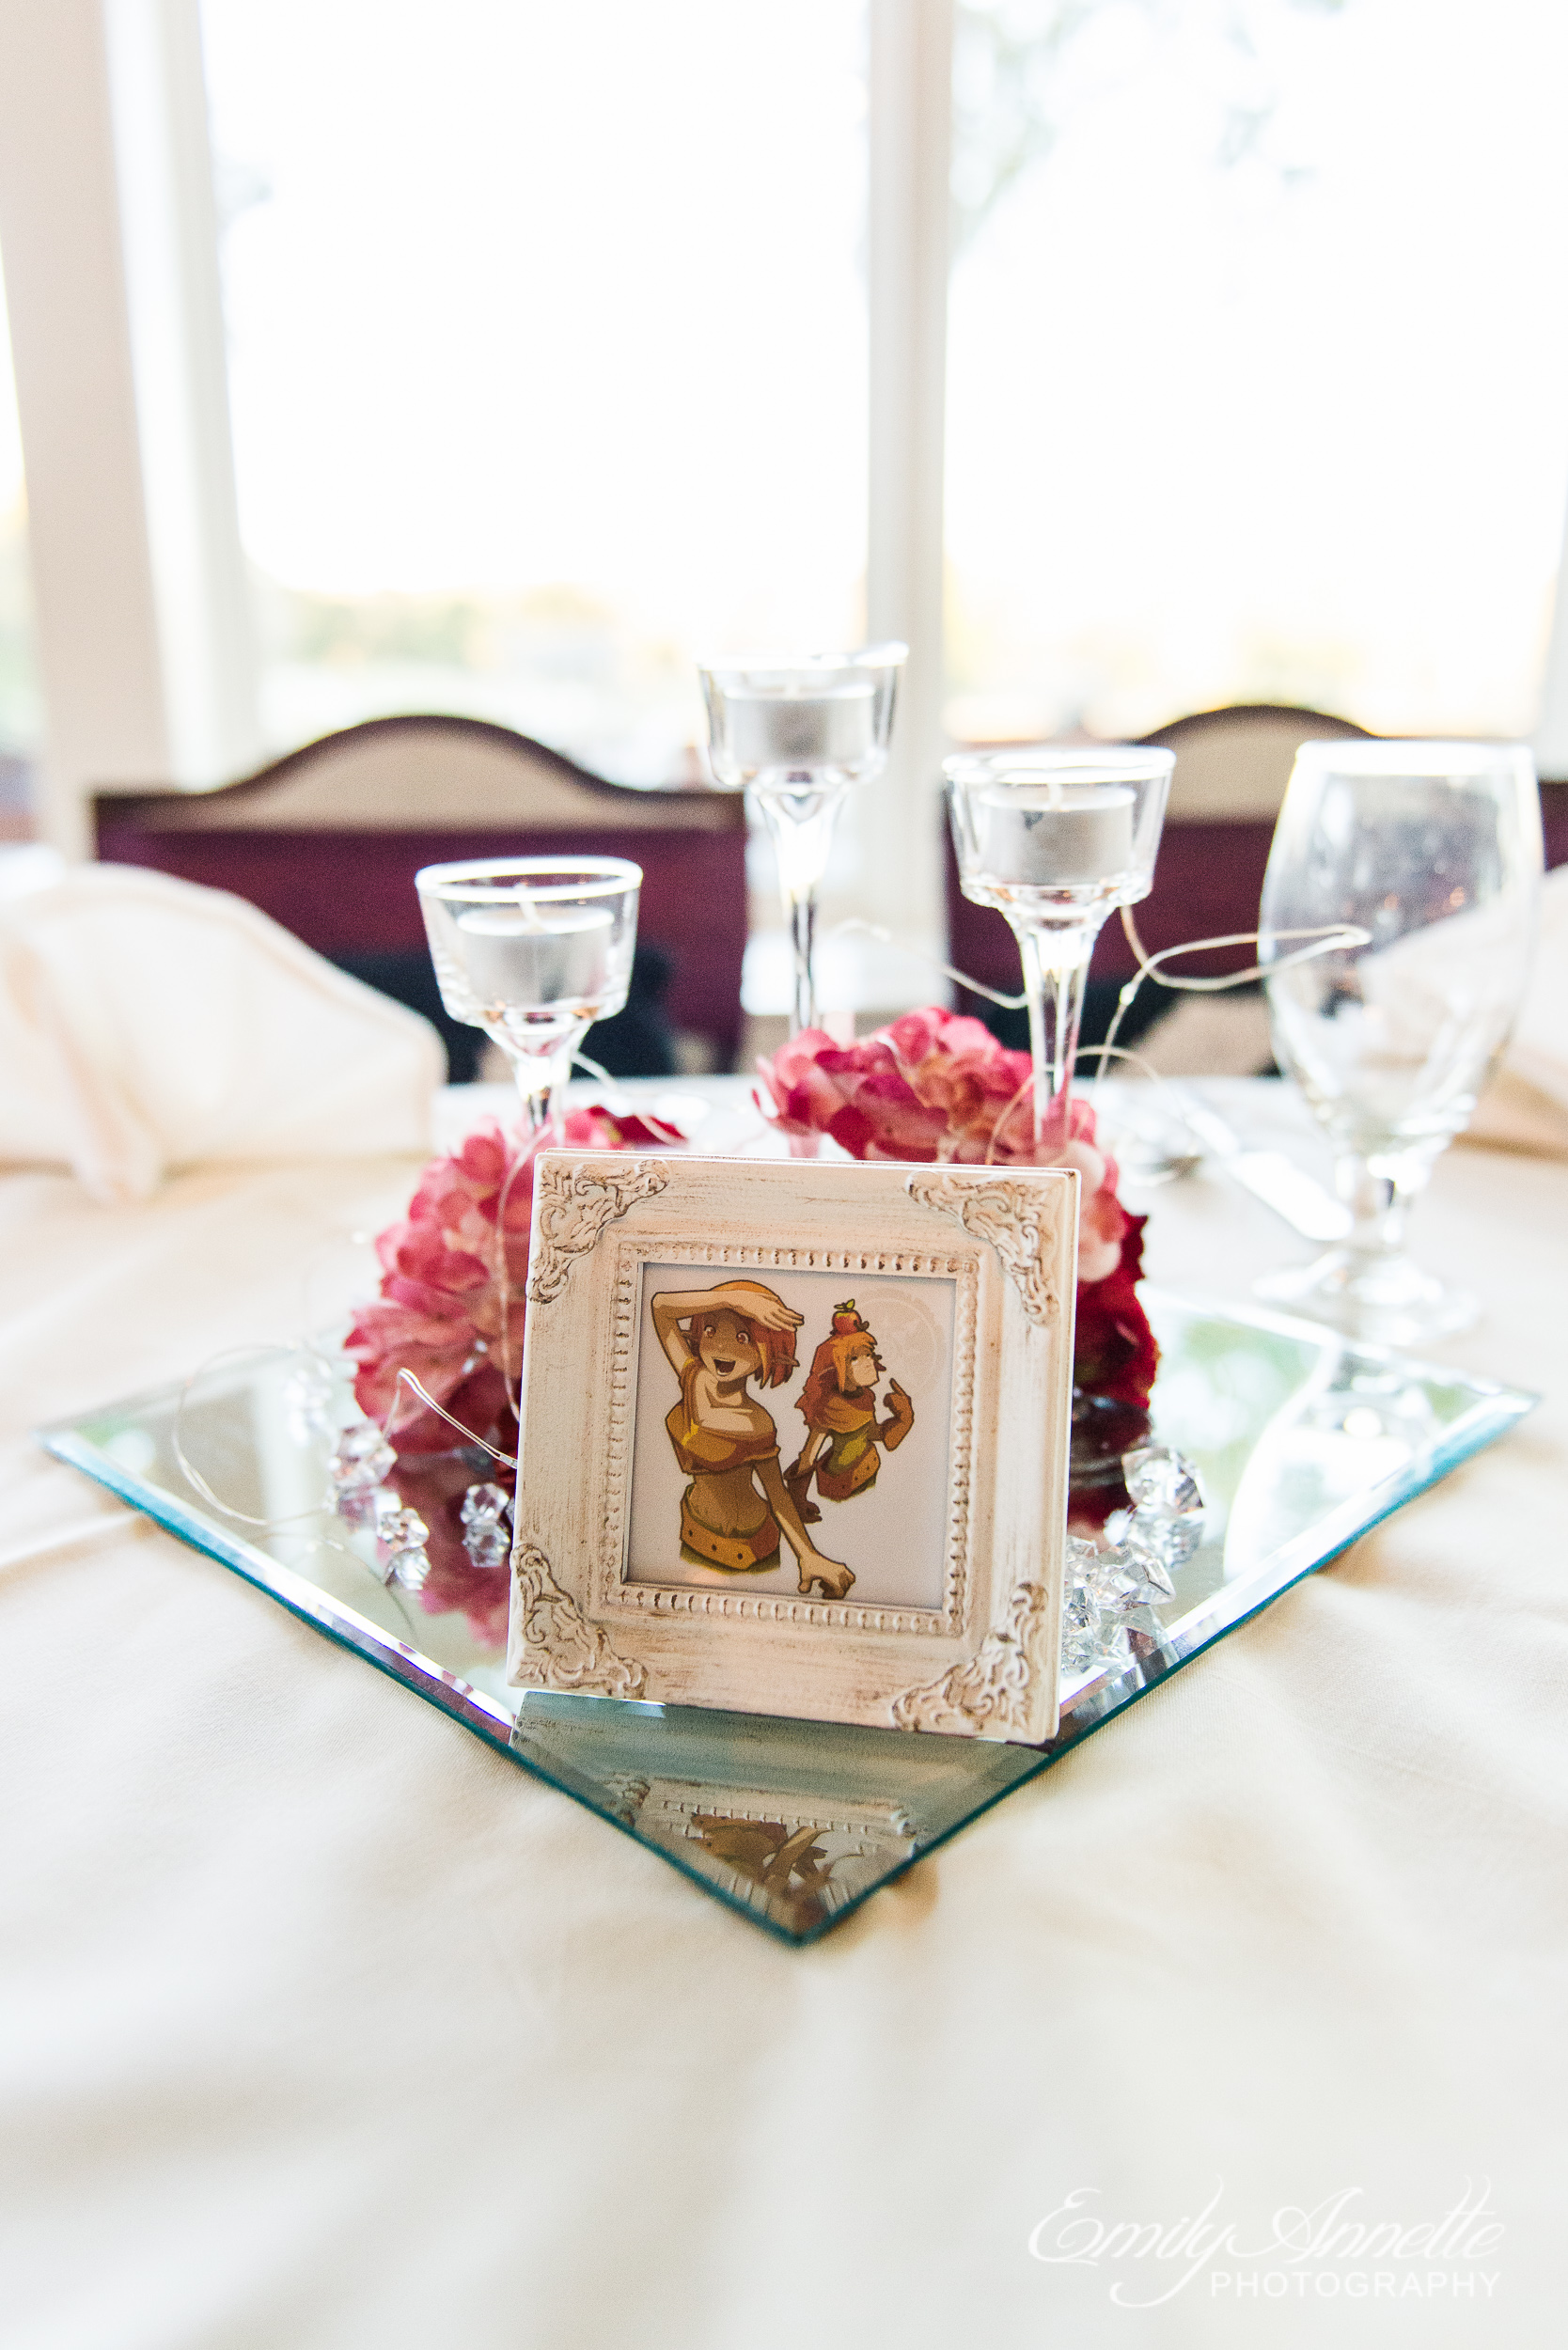 A table centerpiece with flowers, candles, and a framed video game reference as a table number at a wedding reception at Willow Oaks Country Club in Richmond, Virginia